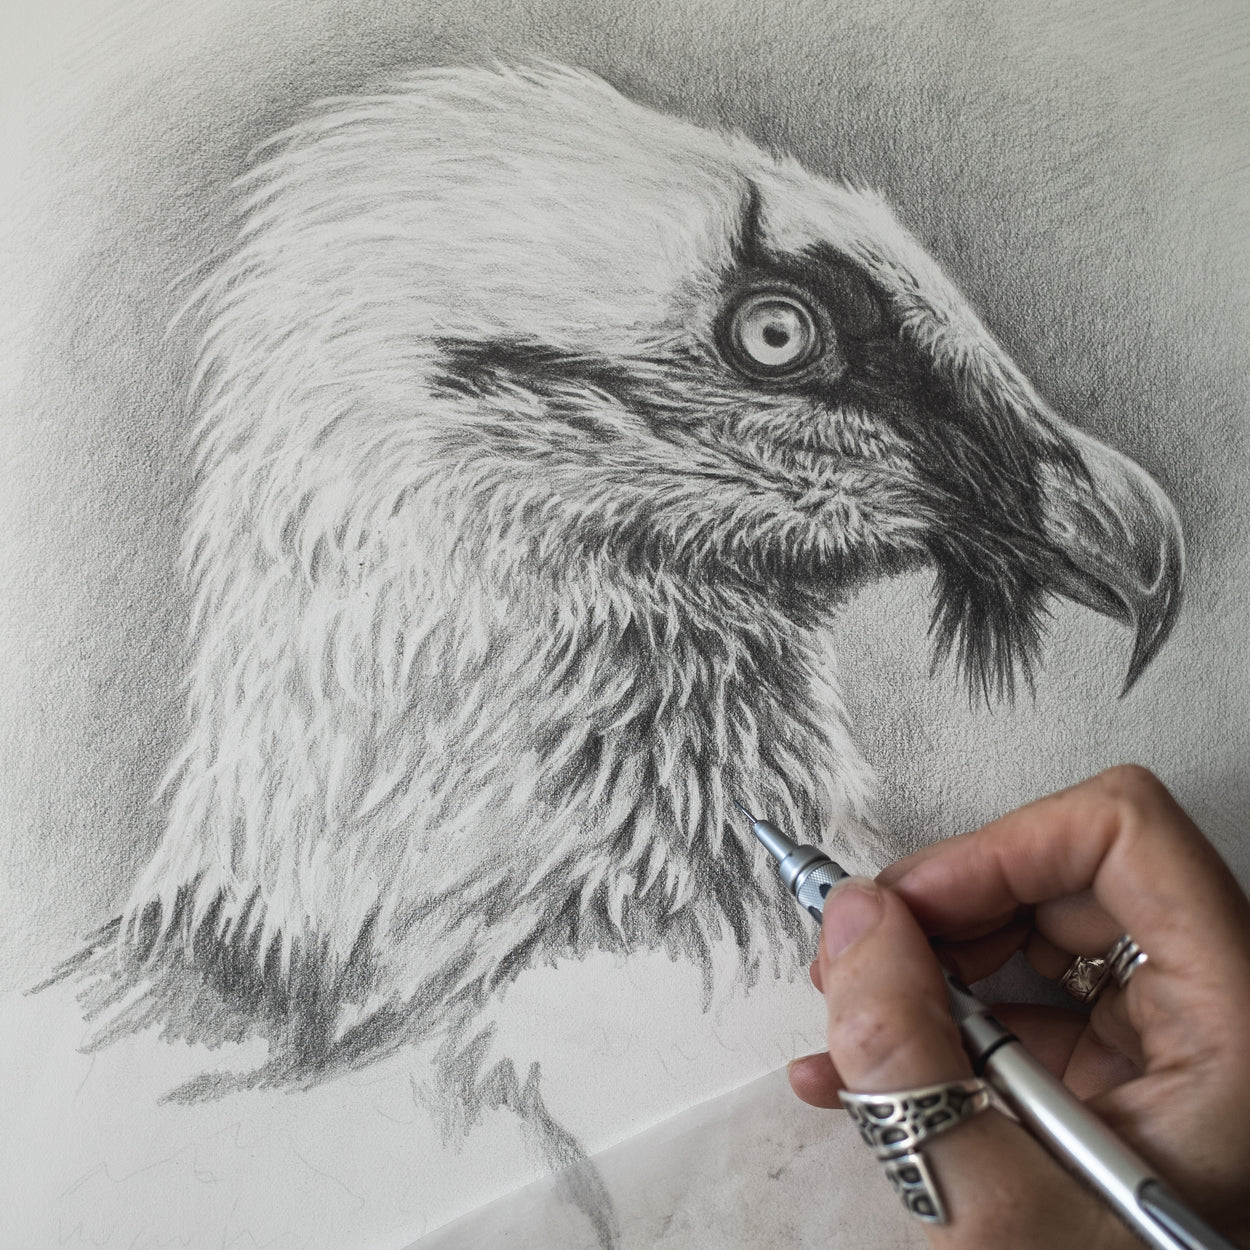 Bearded Vulture Work in Progress - The Thriving Wild